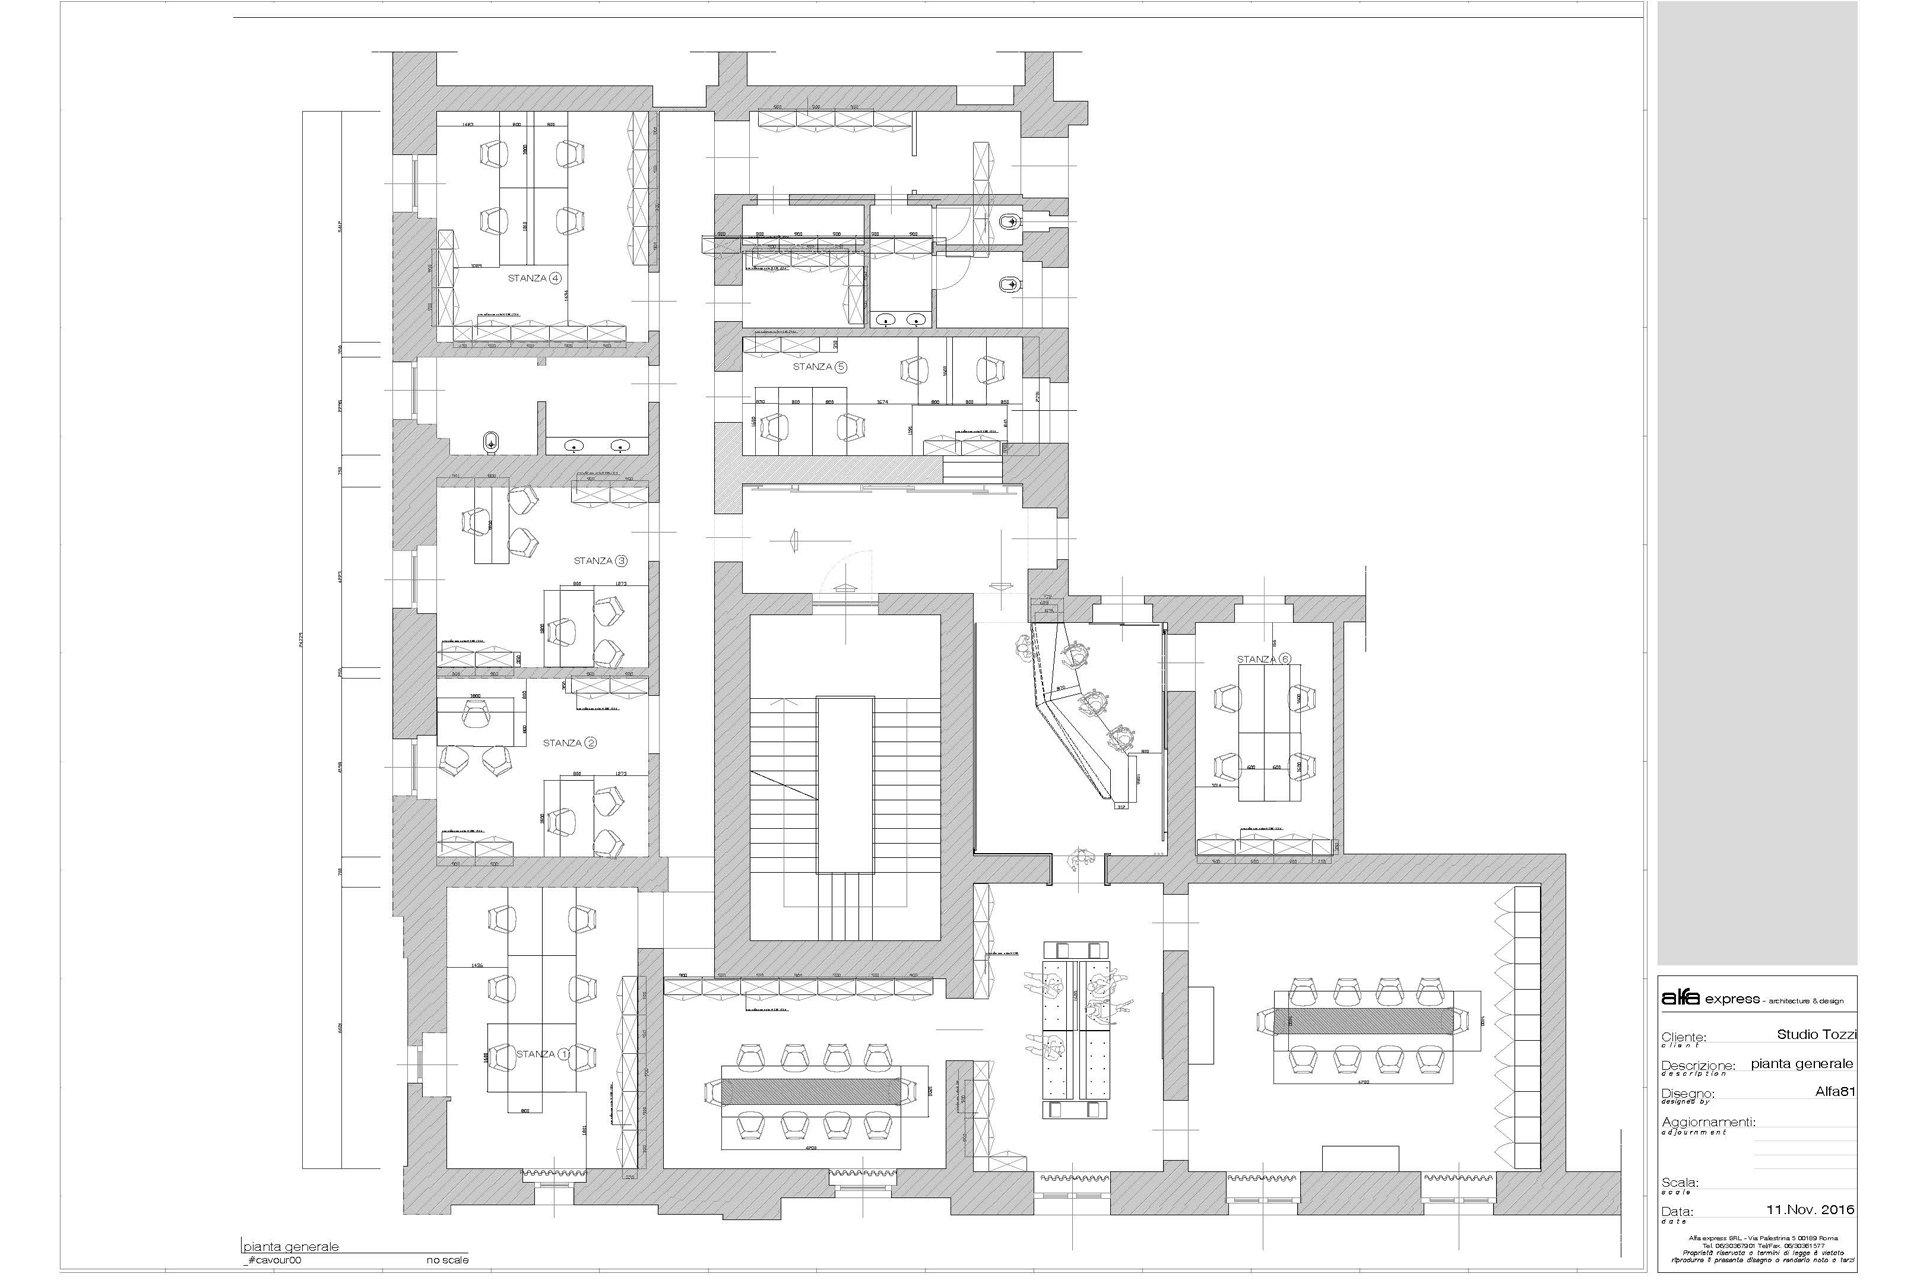 Rome private office - general plan